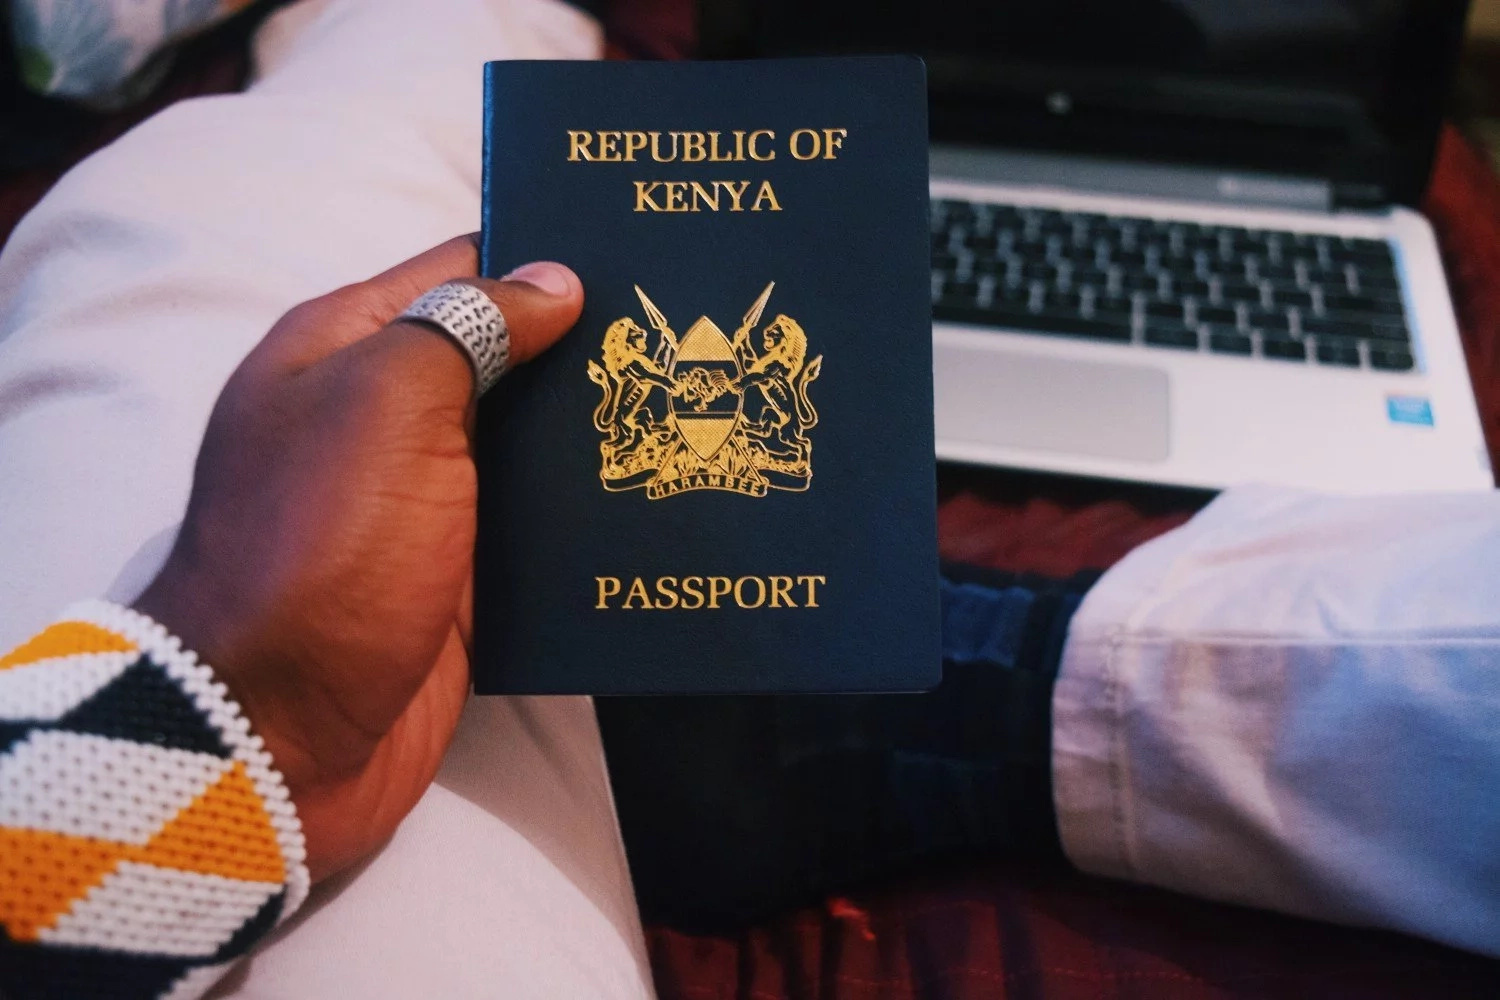 Kenya Passport Tracking: How to Track the Status of Your Passport in Kenya